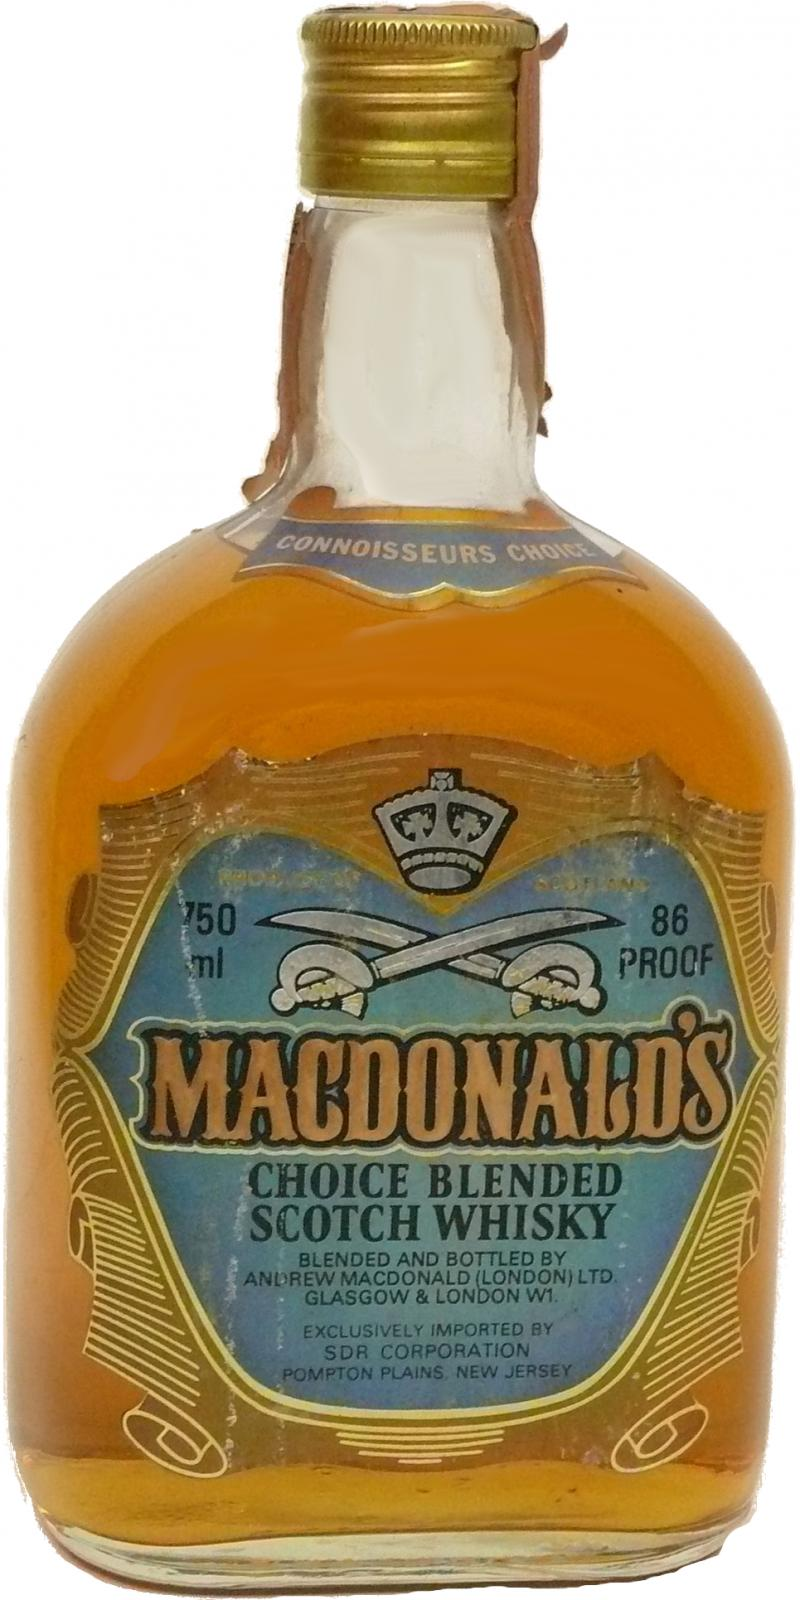 MacDonald's Choice Blended Scotch Whisky